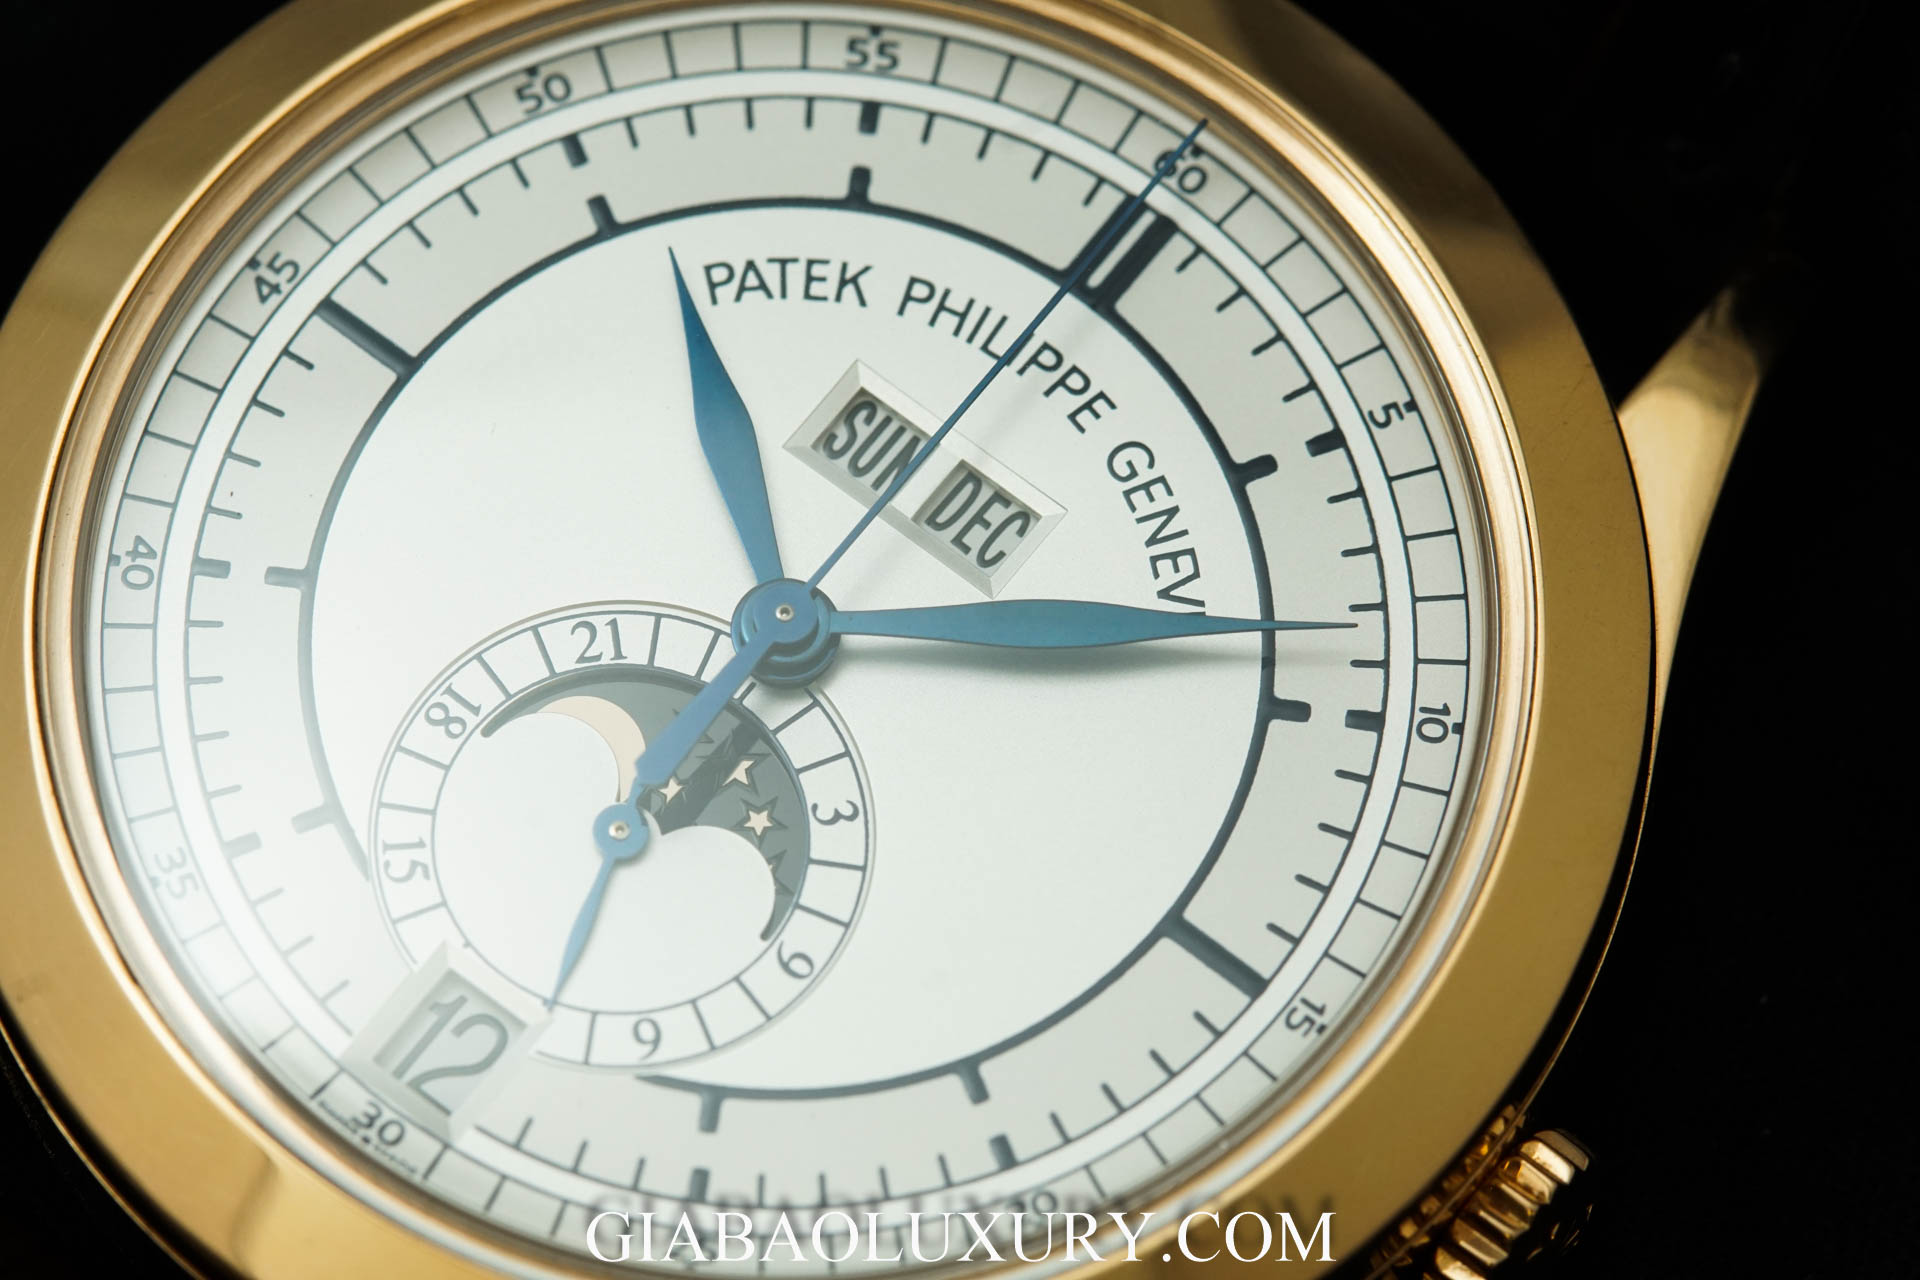 Patek Philippe Complications 5396r-001